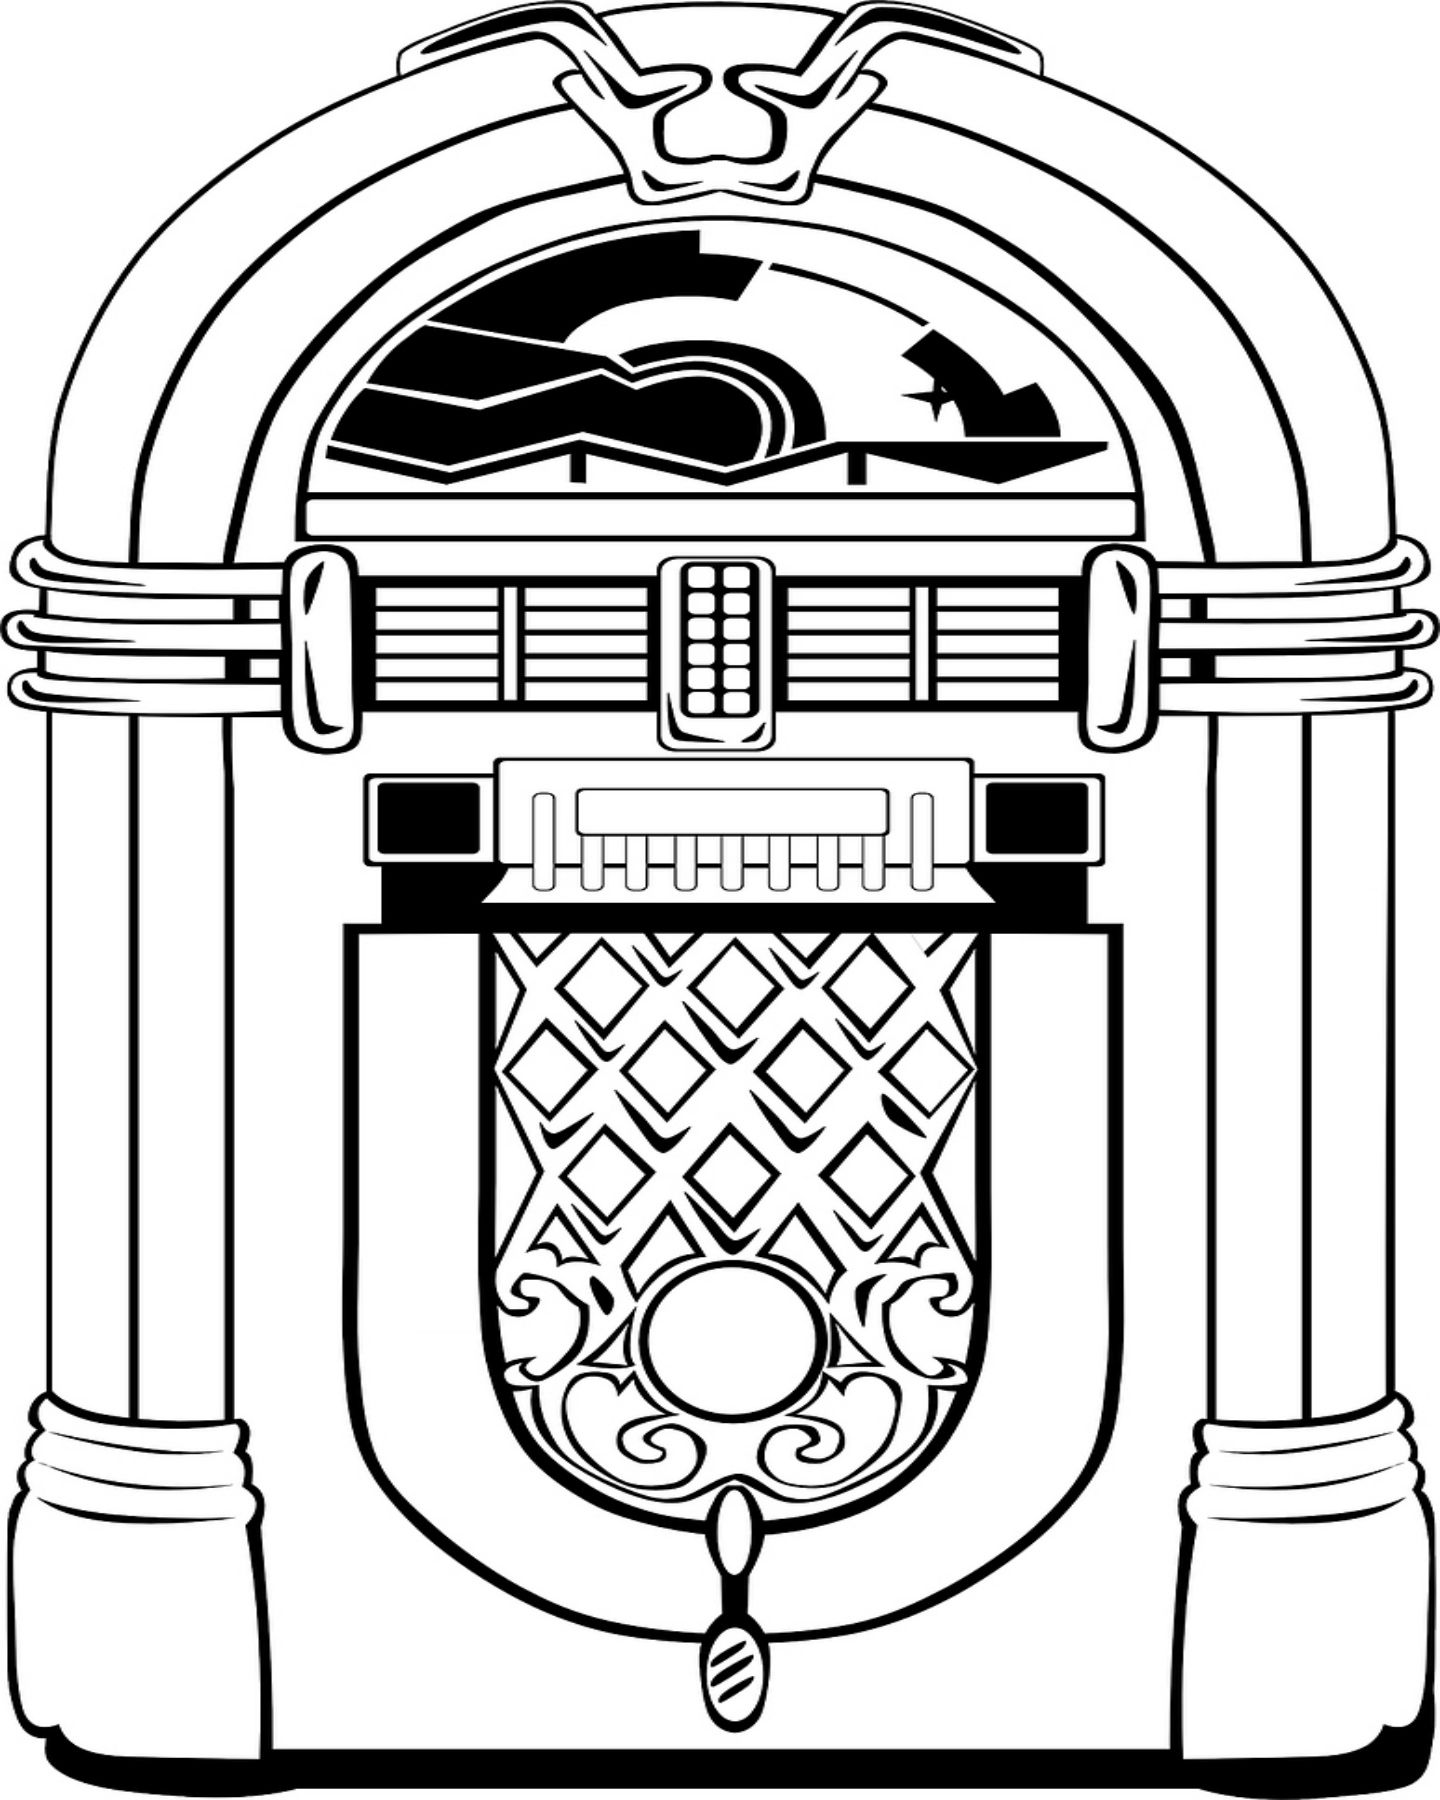 Free Printable Jukebox Coloring Page